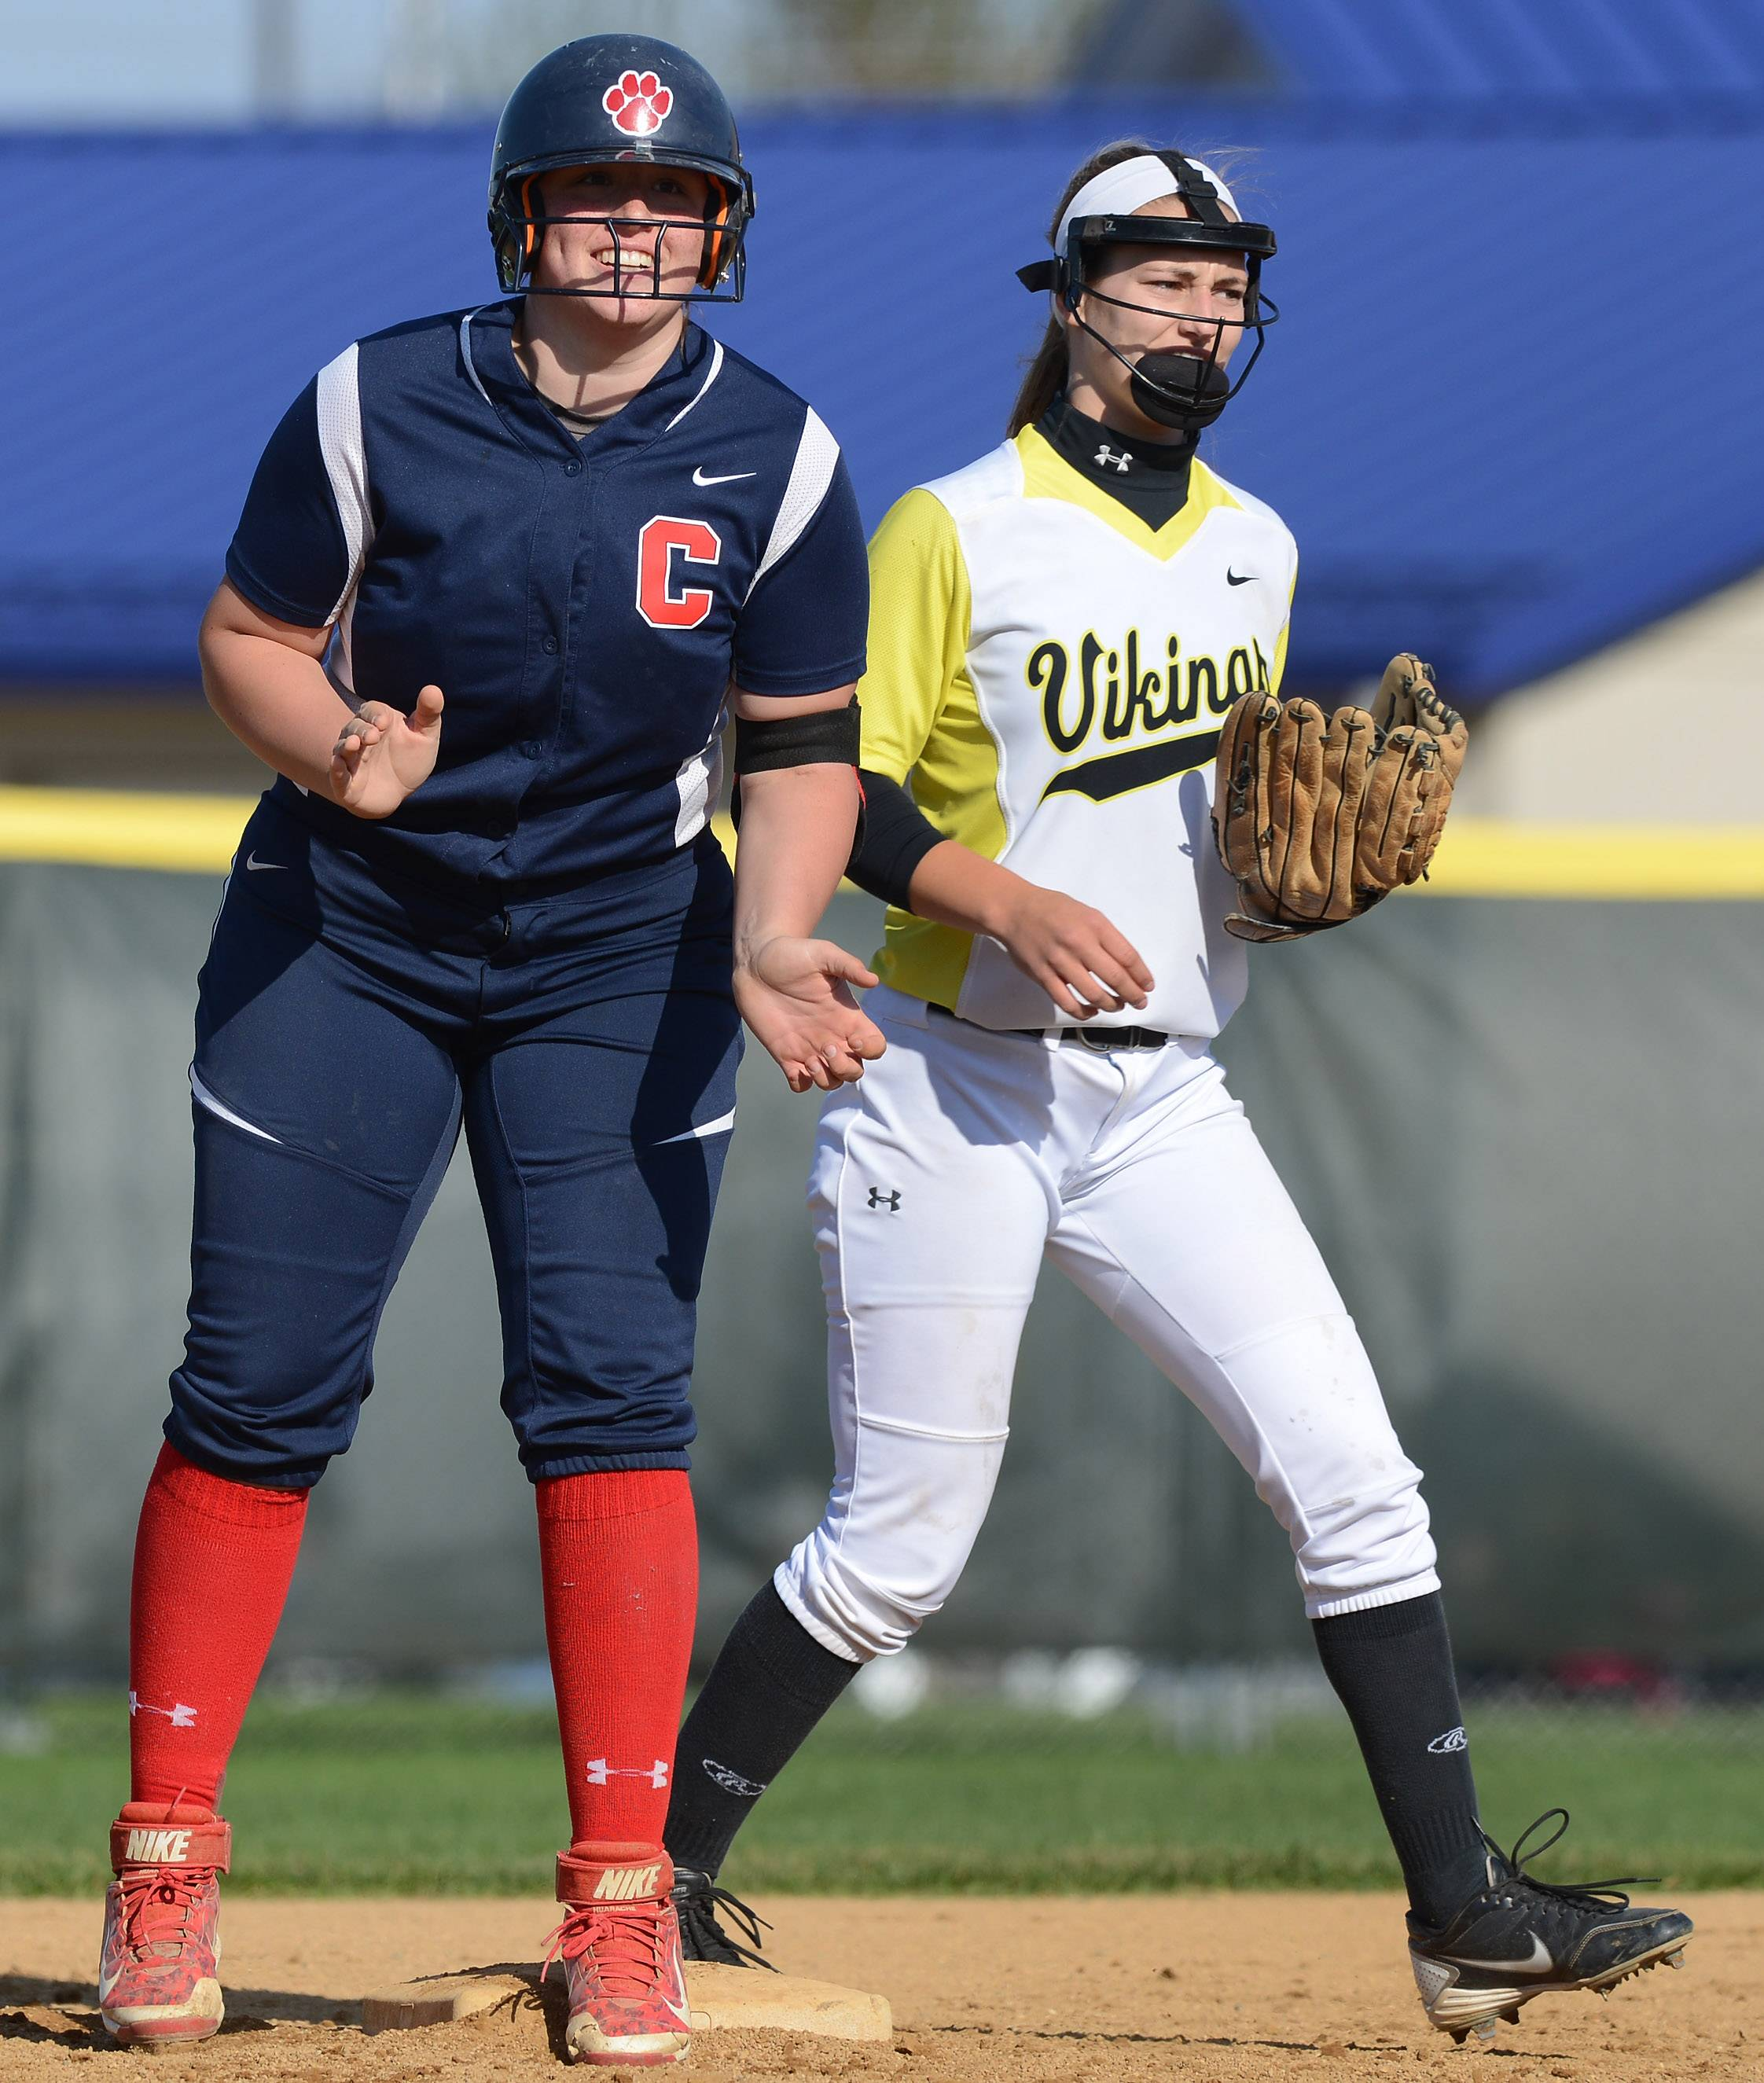 Conant's Morgan Bihun, here celebrating an RBI double as Fremd's Becca Uhrich covers second base, is headed for a collegiate softball future at Wisconsin-Green Bay.